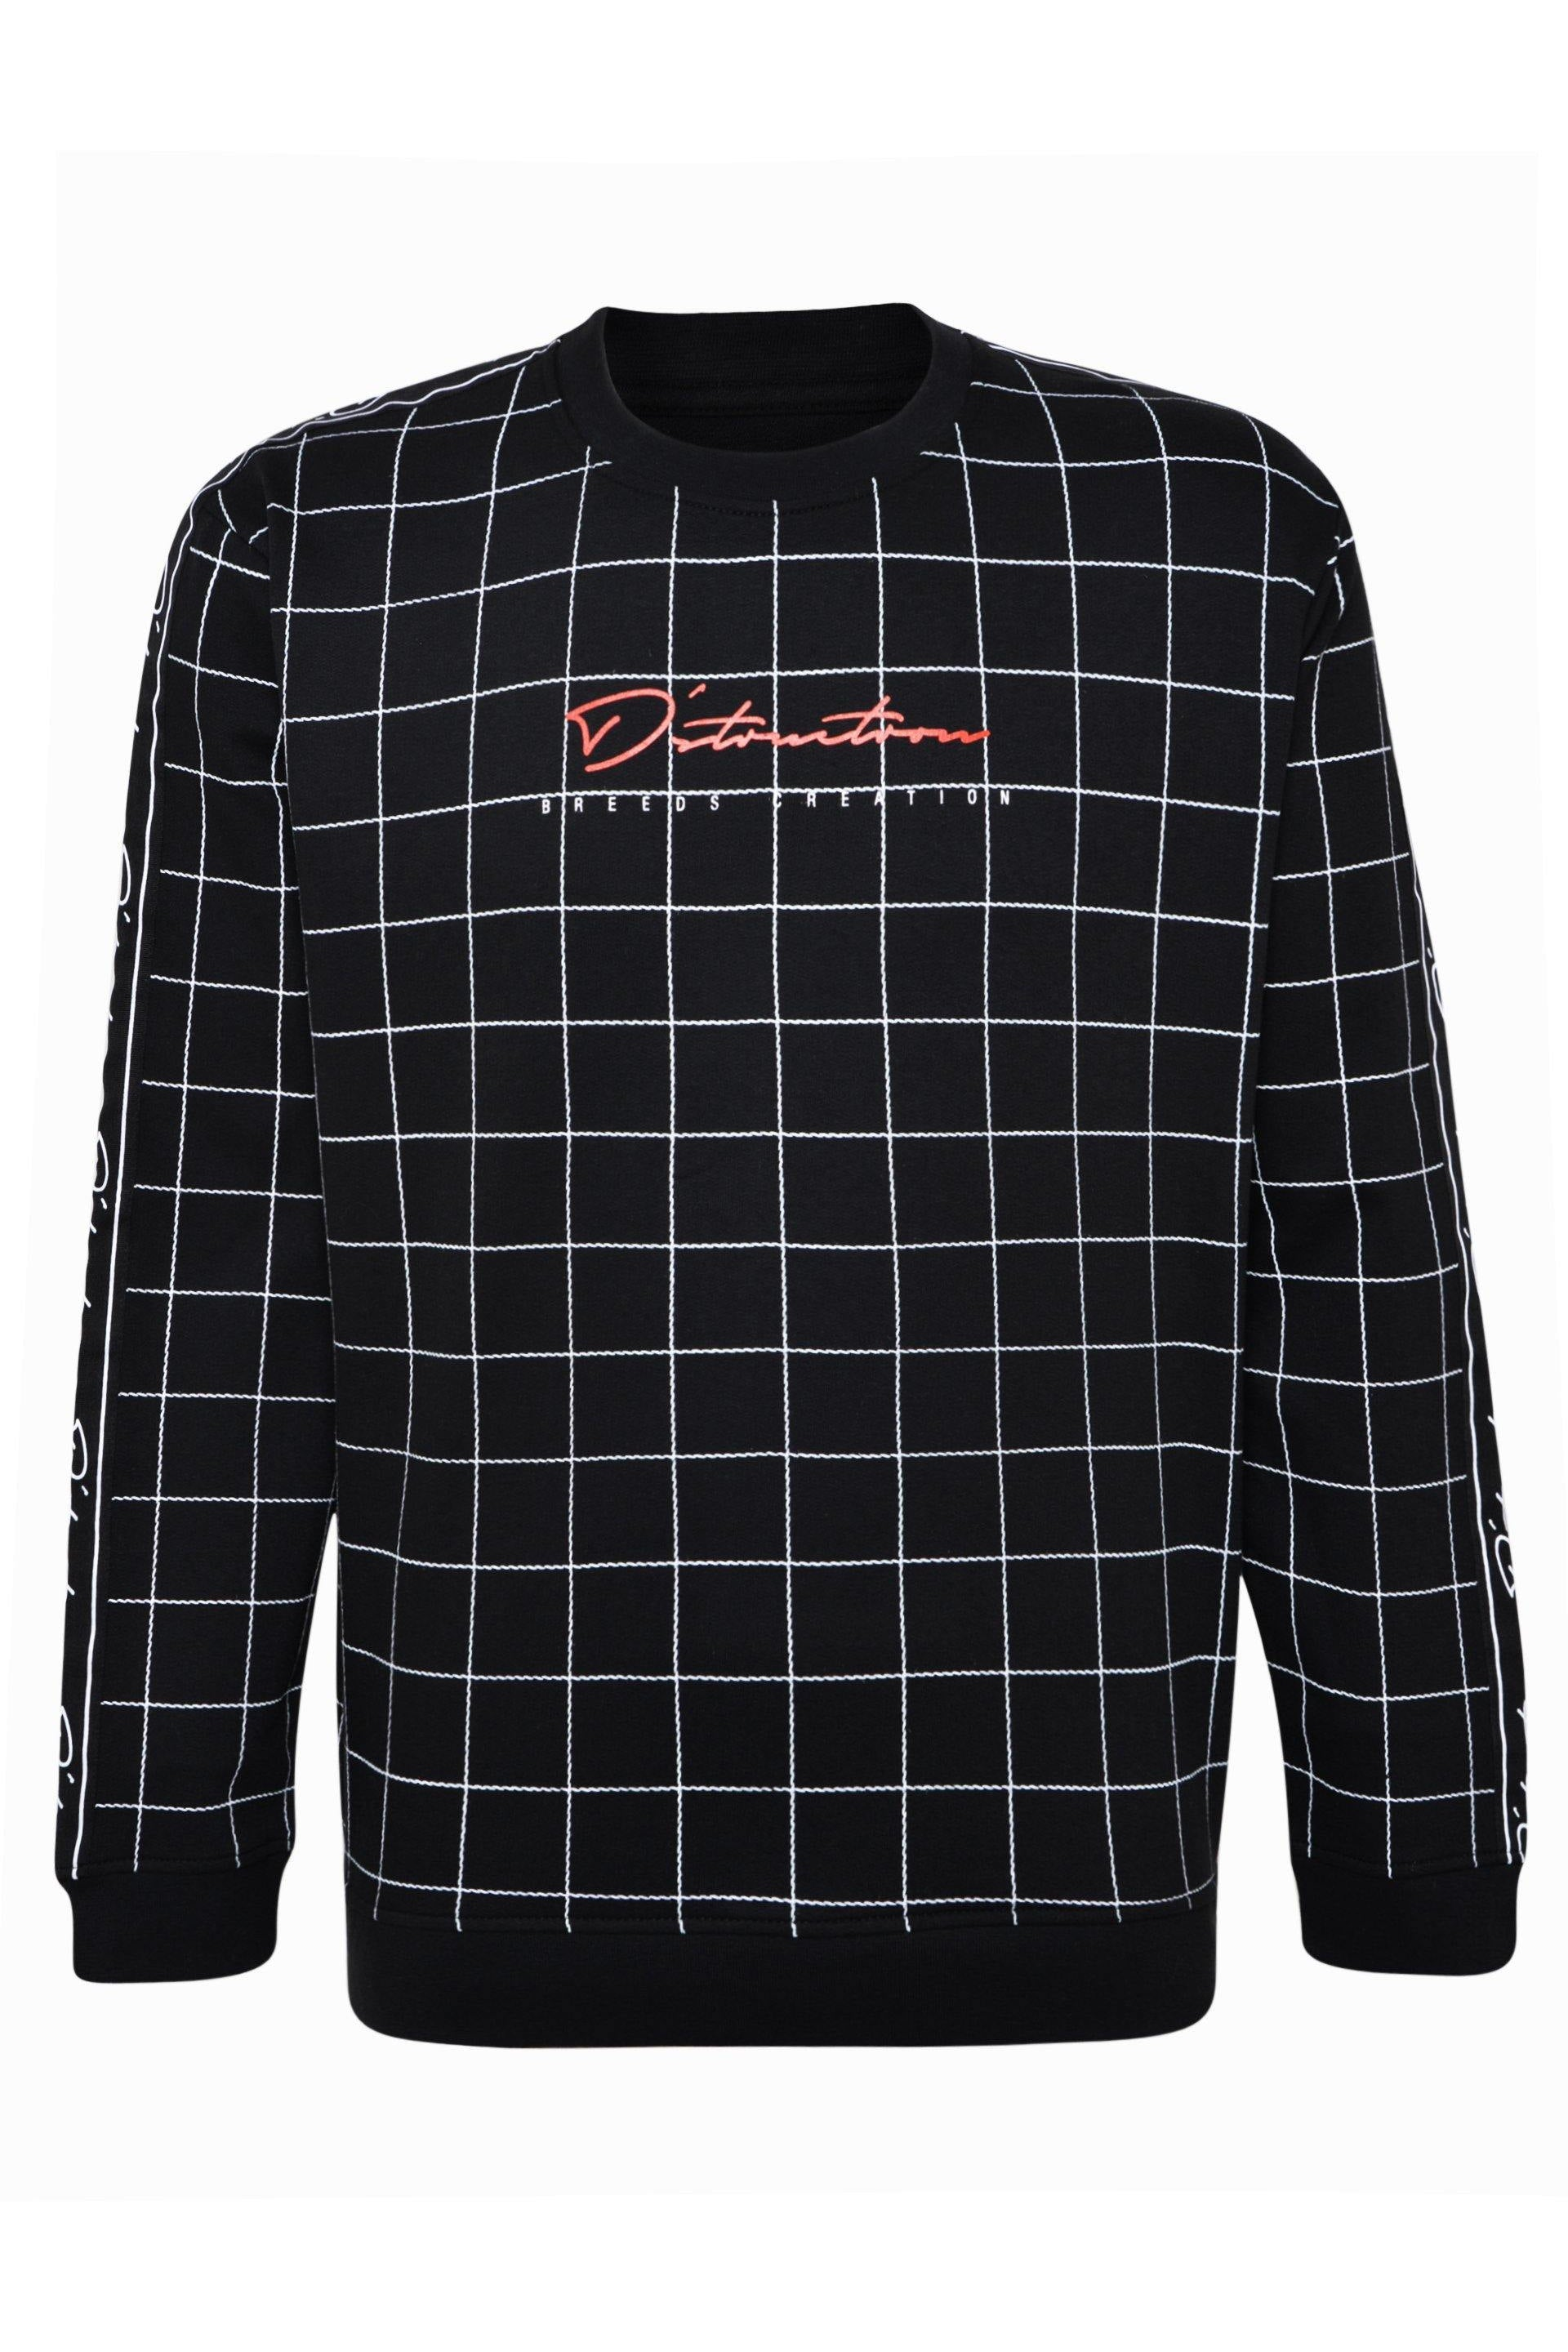 T-Shirts - Grid Sweater Black